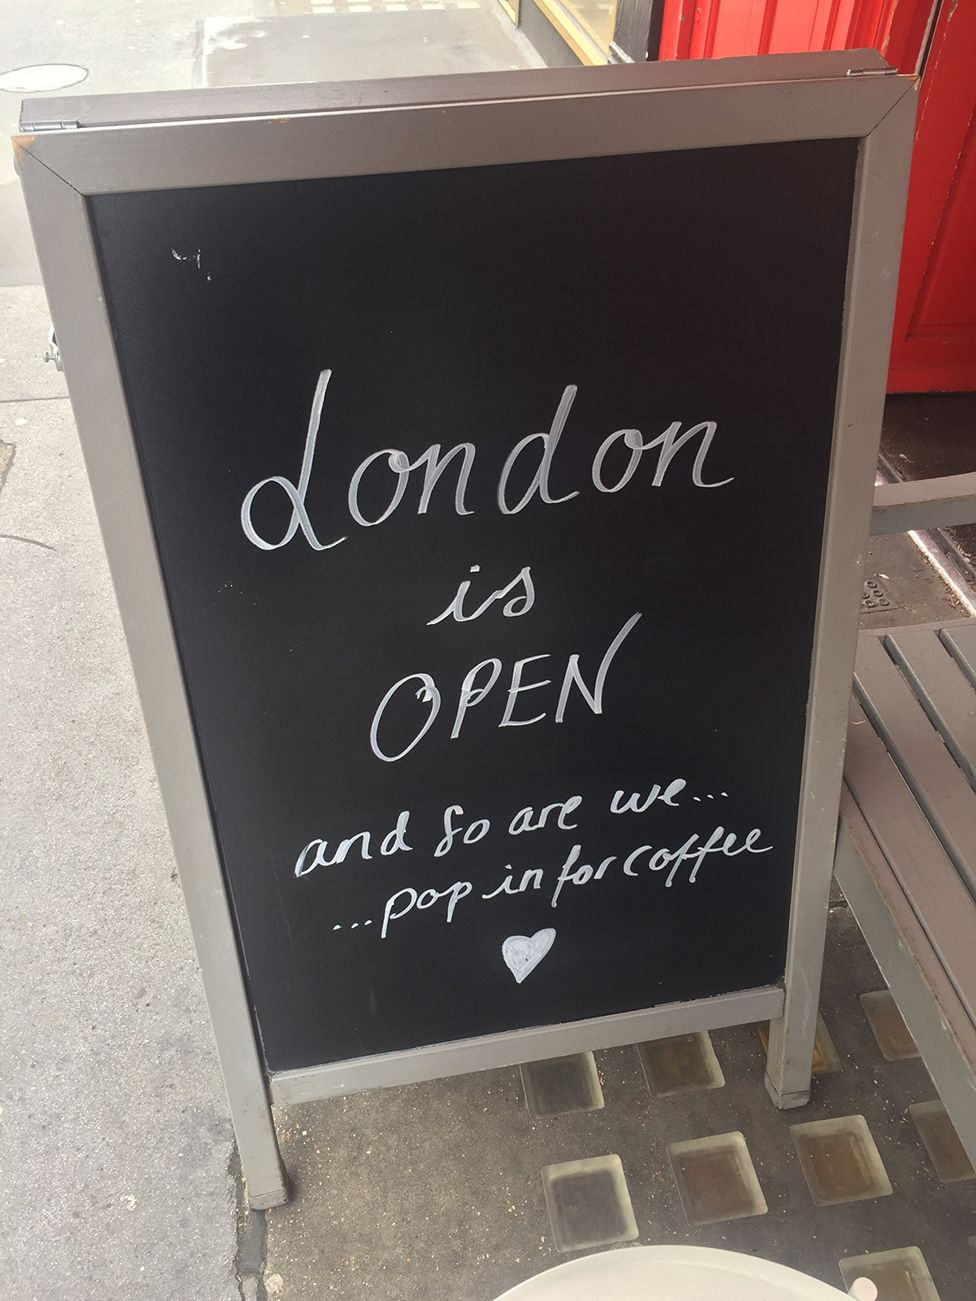 London cafes are welcoming visitors